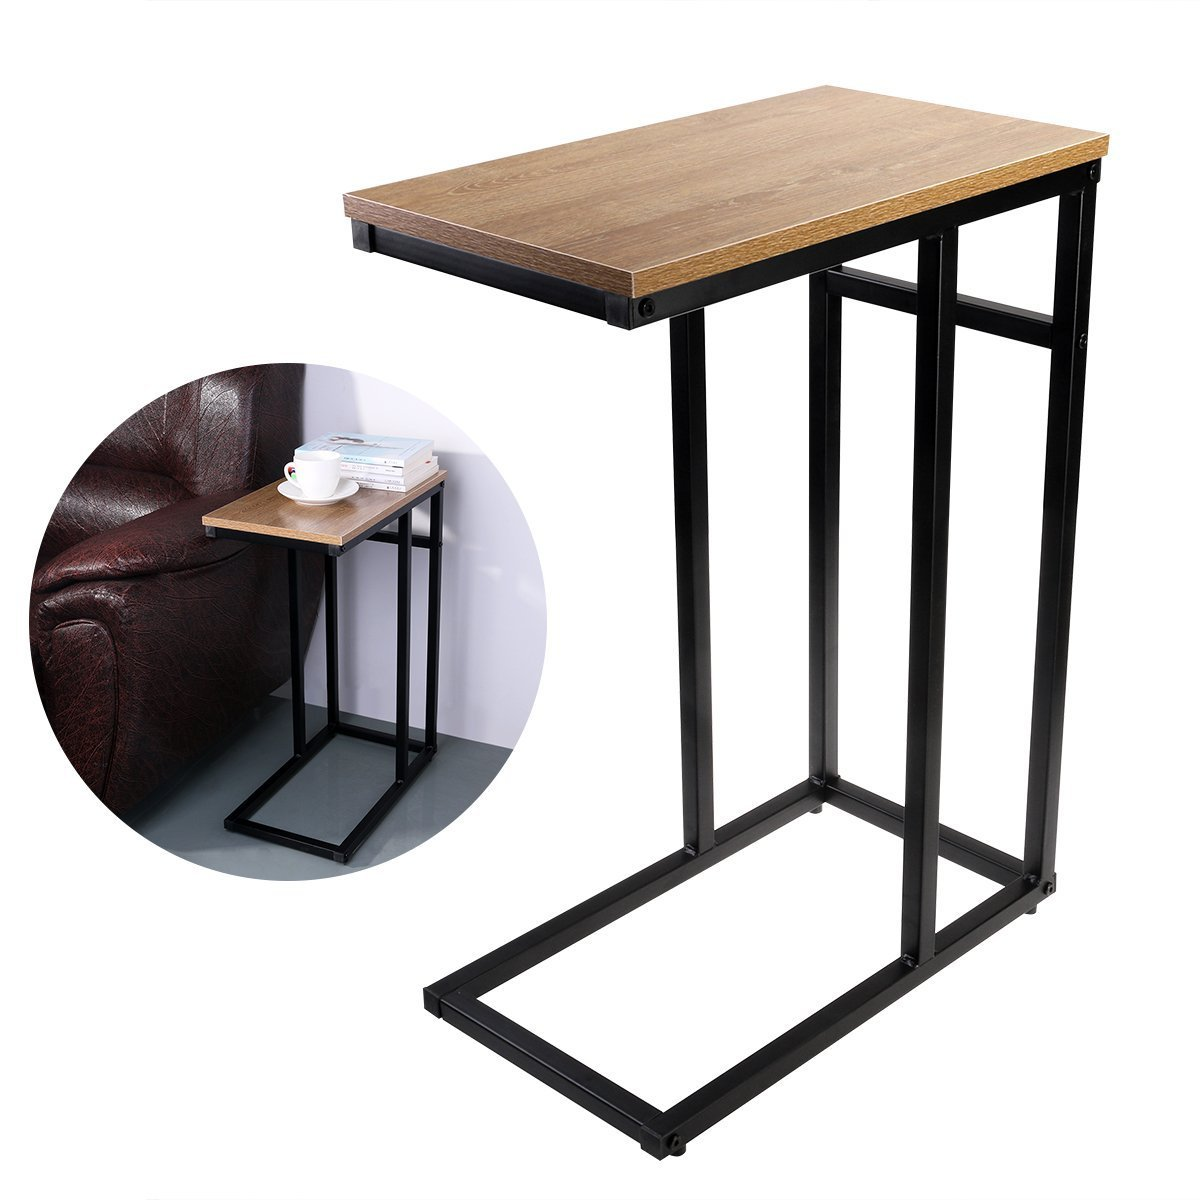 OULII Sofa Side End Table C Table Small, Snack Table with Wood Finish and Steel Construction for Coffee, Snack, Tablet